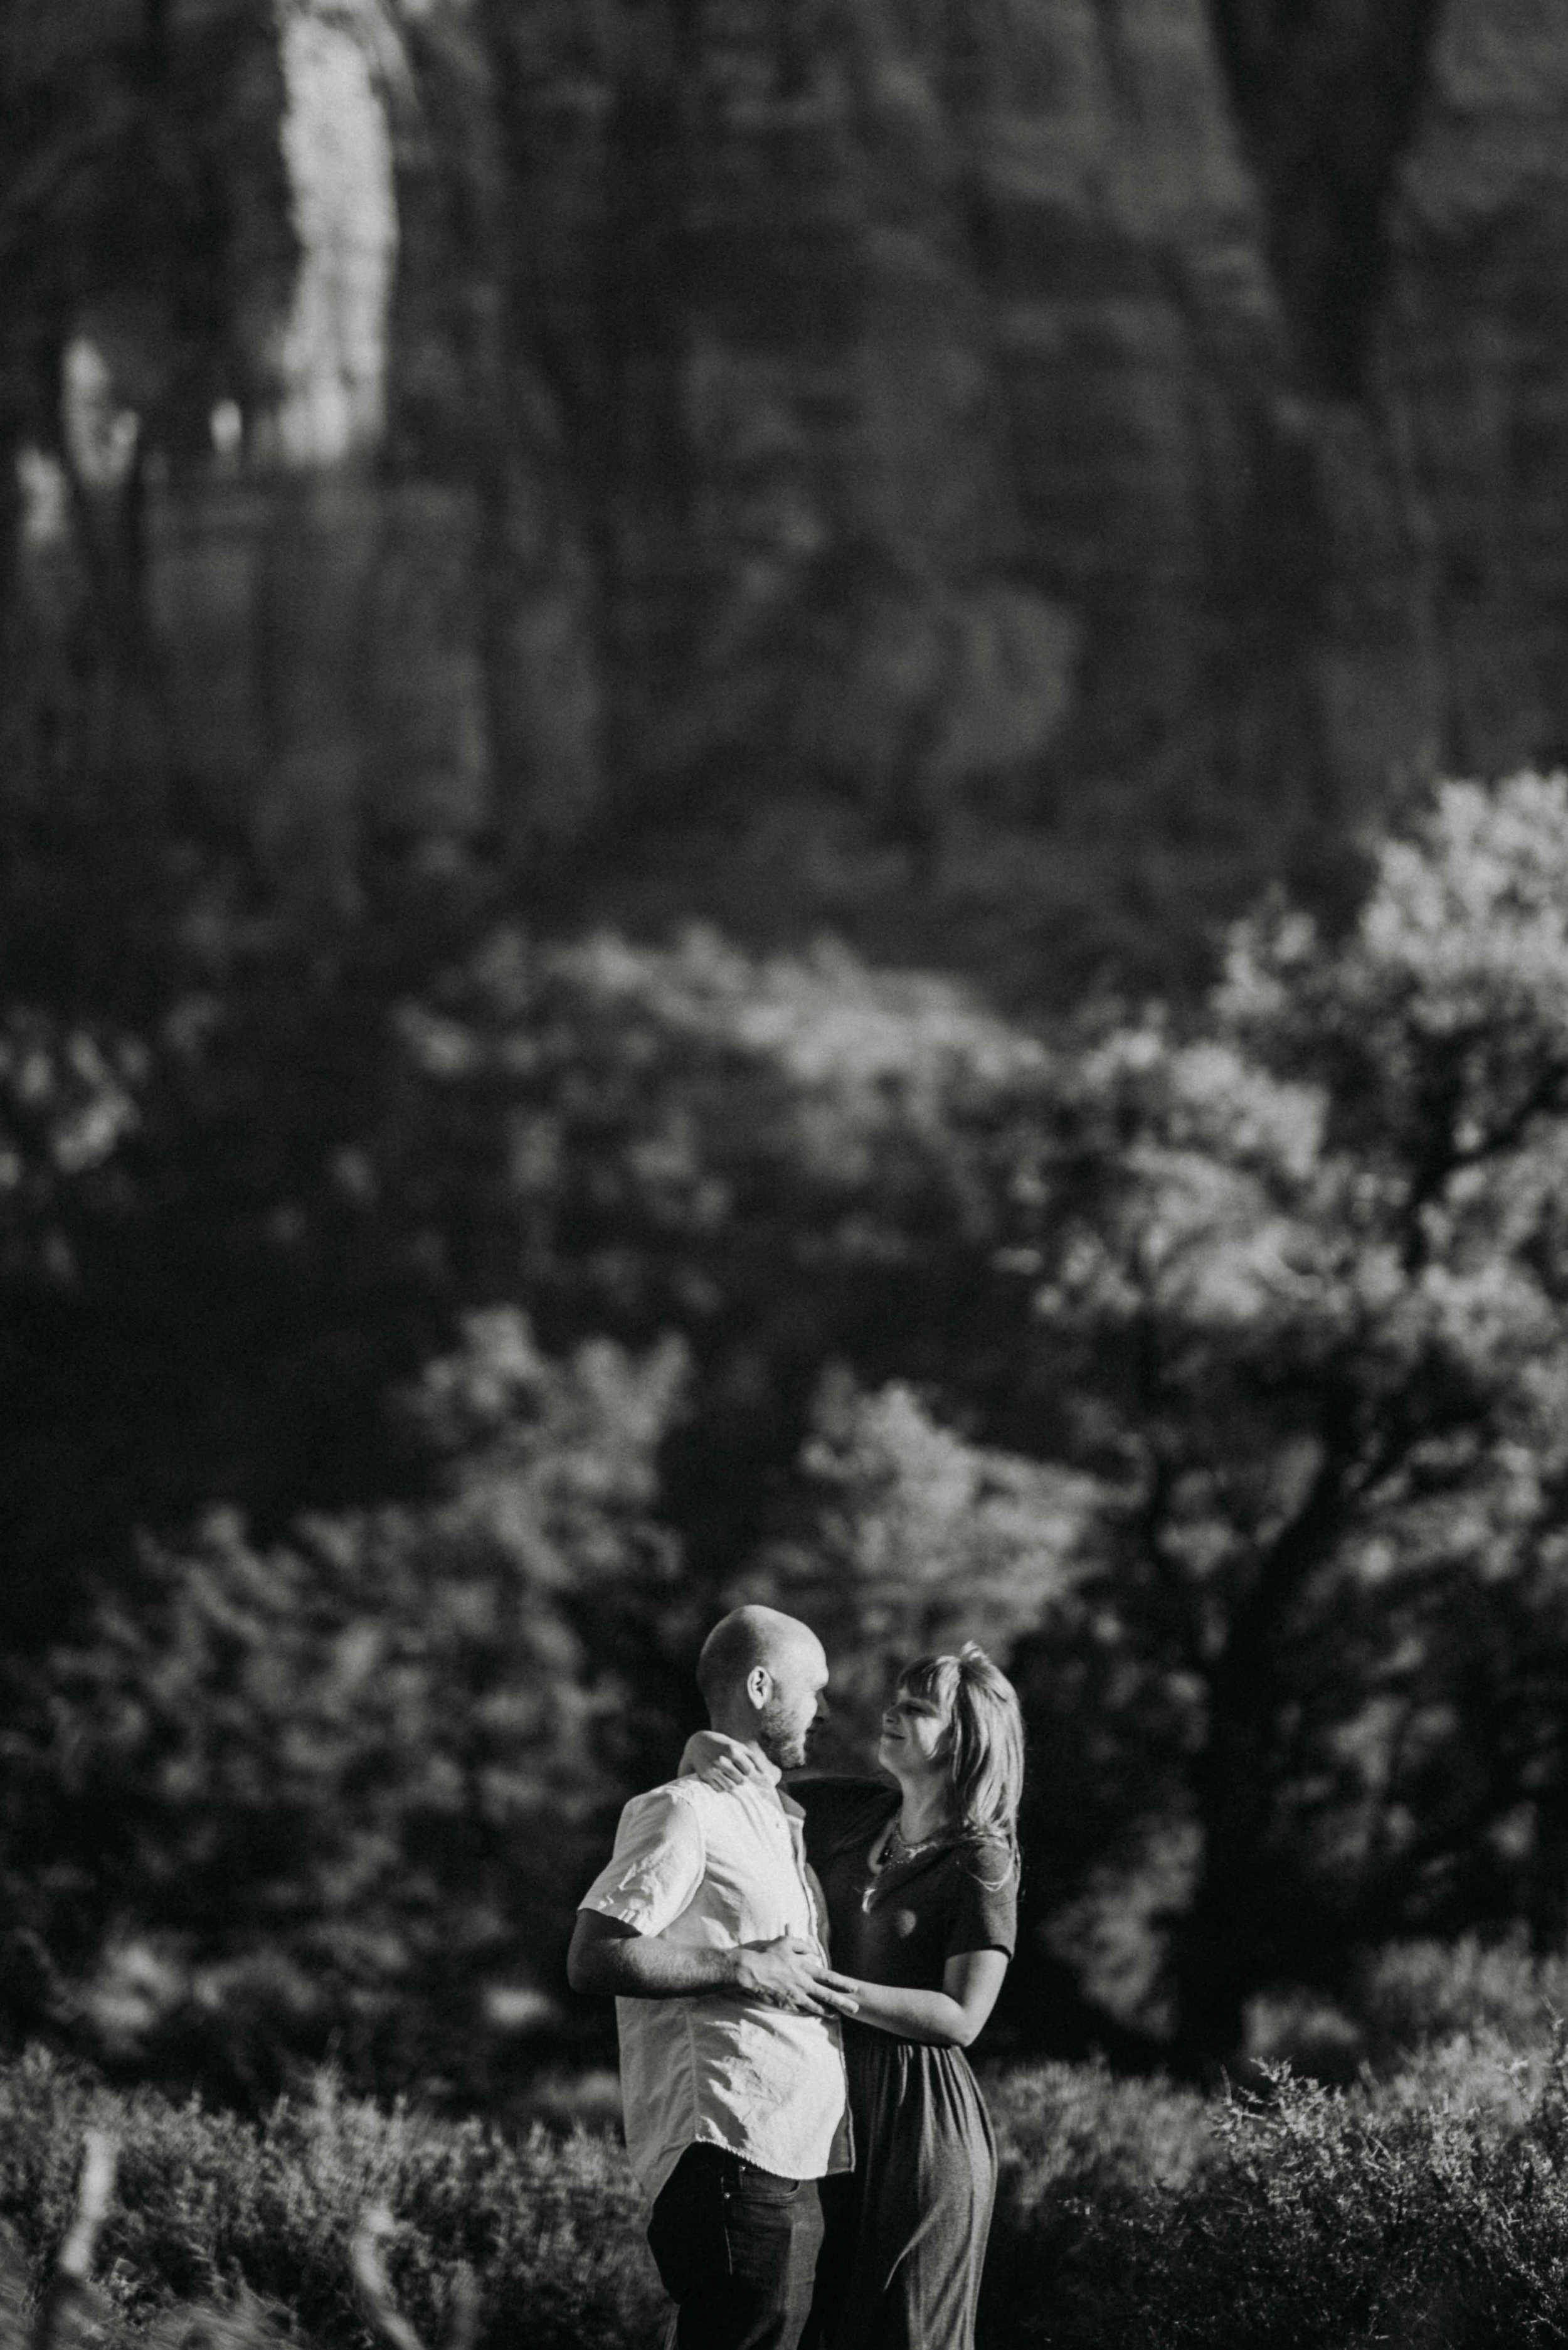 zion_national_park_utah_wedding_photography_engagement-3050.JPG